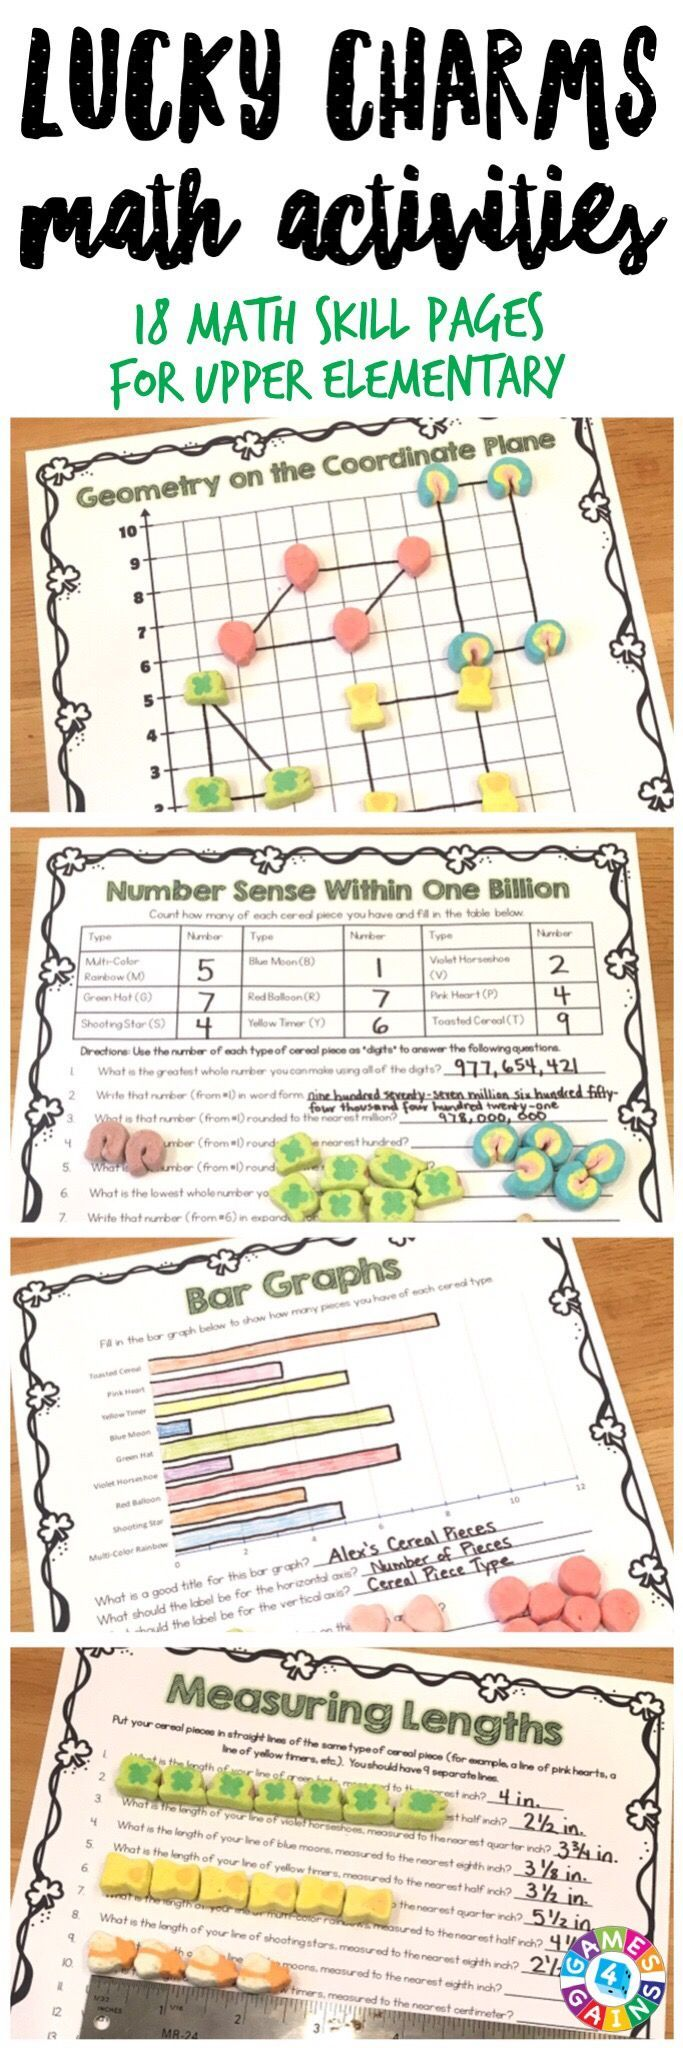 """""""My students were SO engaged and excited!"""" Lucky Charms Math Project contains 17 printable math activities to use with Lucky Charms cereal. Just print, grab some cereal, and get ready to have tons of fun! Skills covered: operations, number sense, patterns, multiples, factors, mean, fractions, decimals, graphs, coordinate plane, measurement, and more! Perfect for celebrating St. Patrick's Day or for any time of year! Ideal for grades 4-6."""